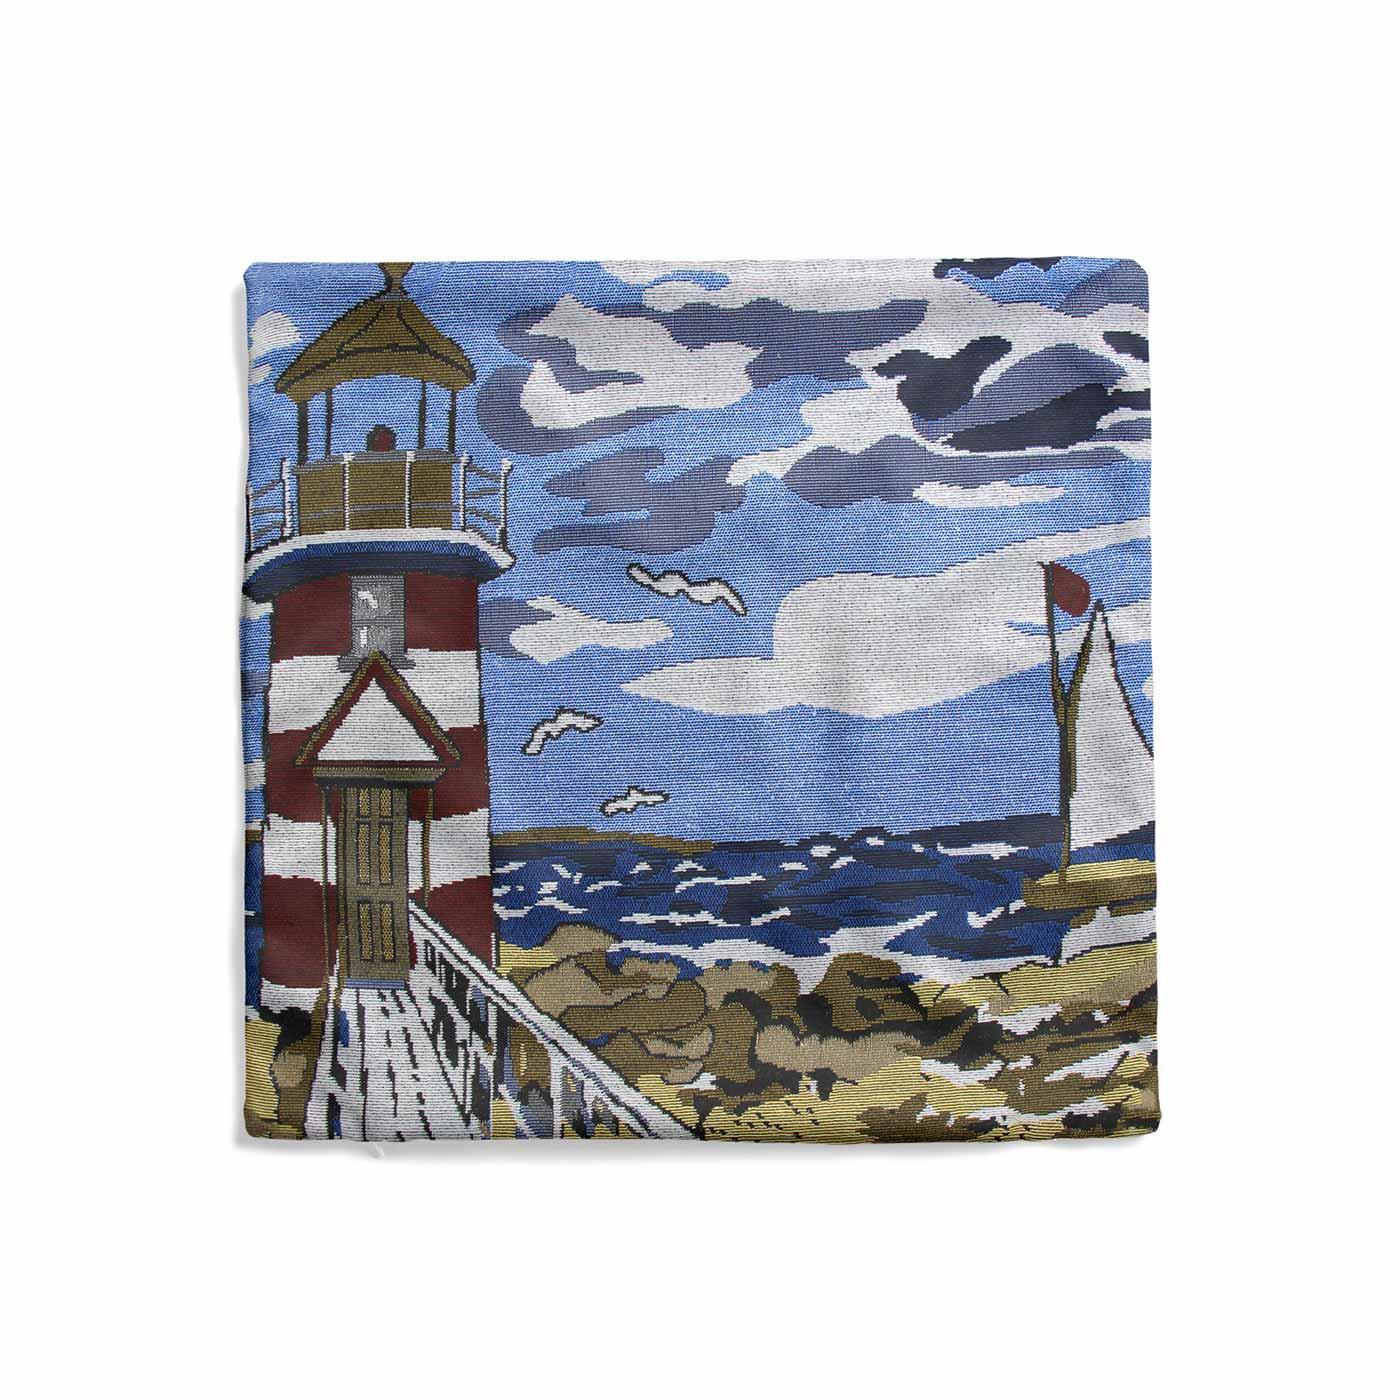 Tapestry-Cushion-Covers-Vintage-Pillow-Cover-Collection-18-034-45cm-Filled-Cushions thumbnail 185